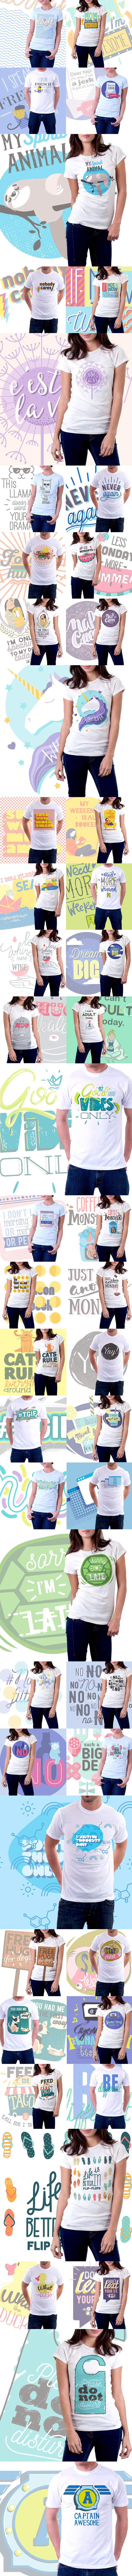 Find these awesome t-shirt designs and more here: https://www.inkydeals.com/deal/50-amazing-vector-t-shirt-designs/